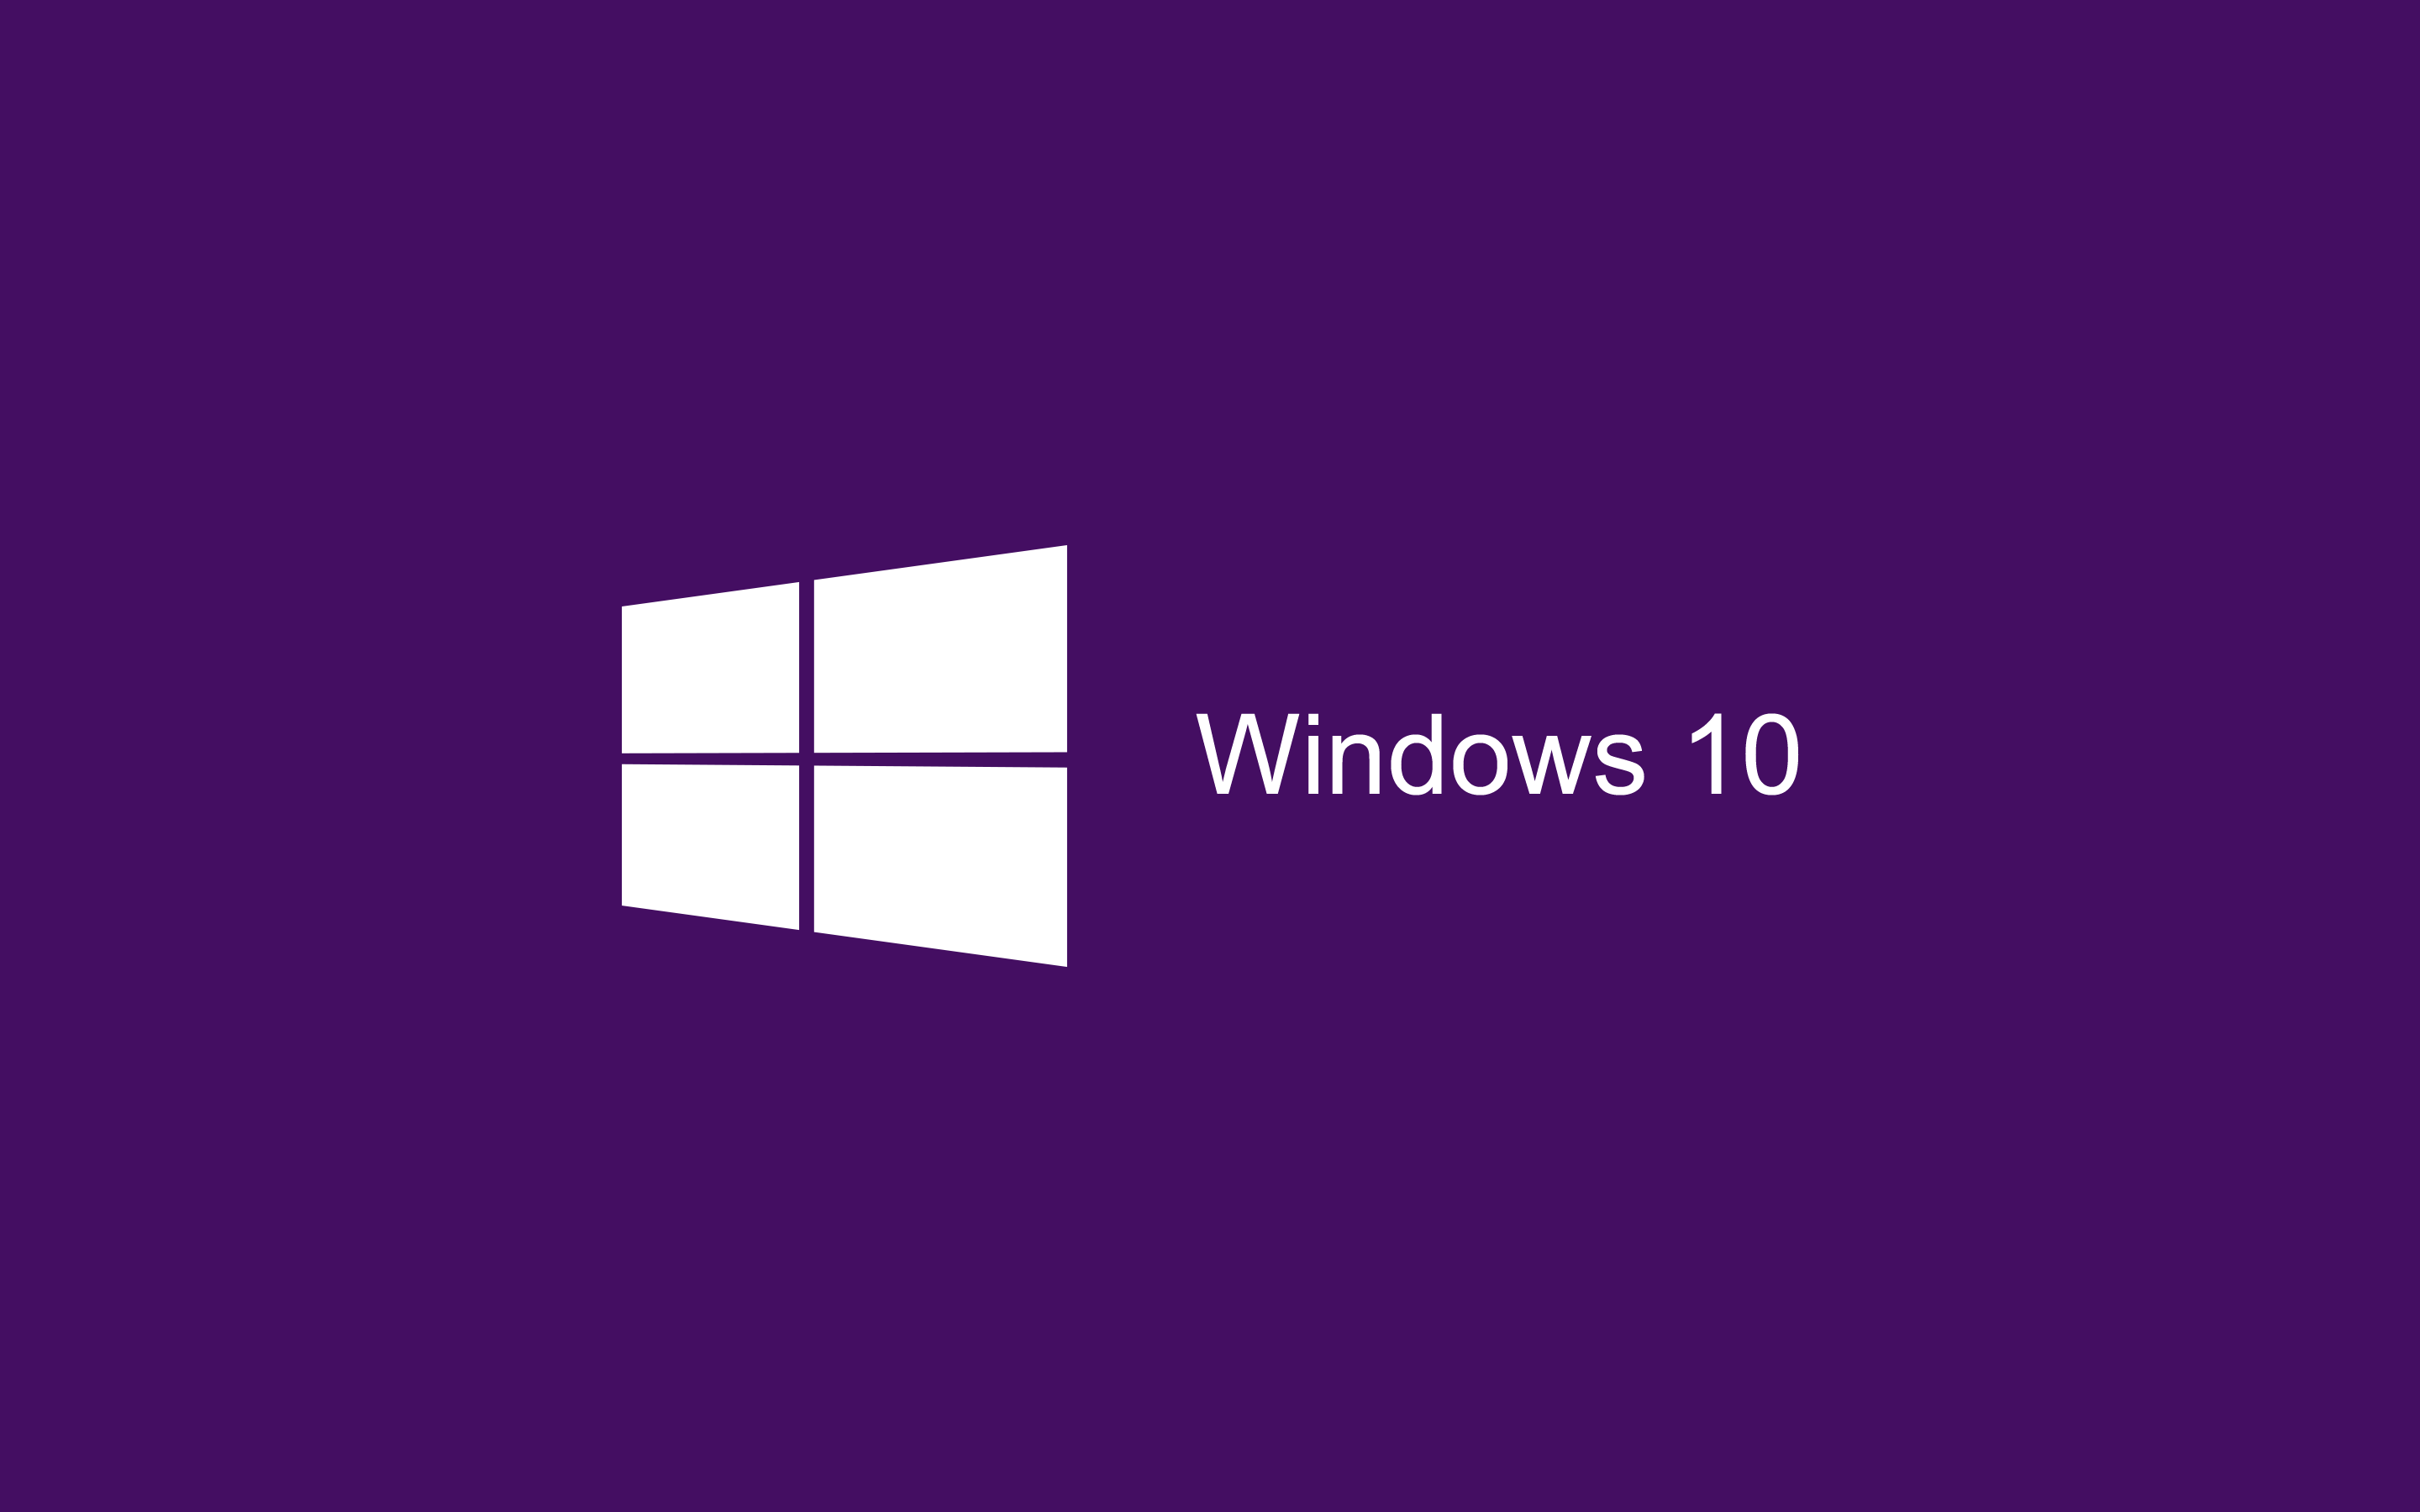 Windows 10 HD Wallpaper